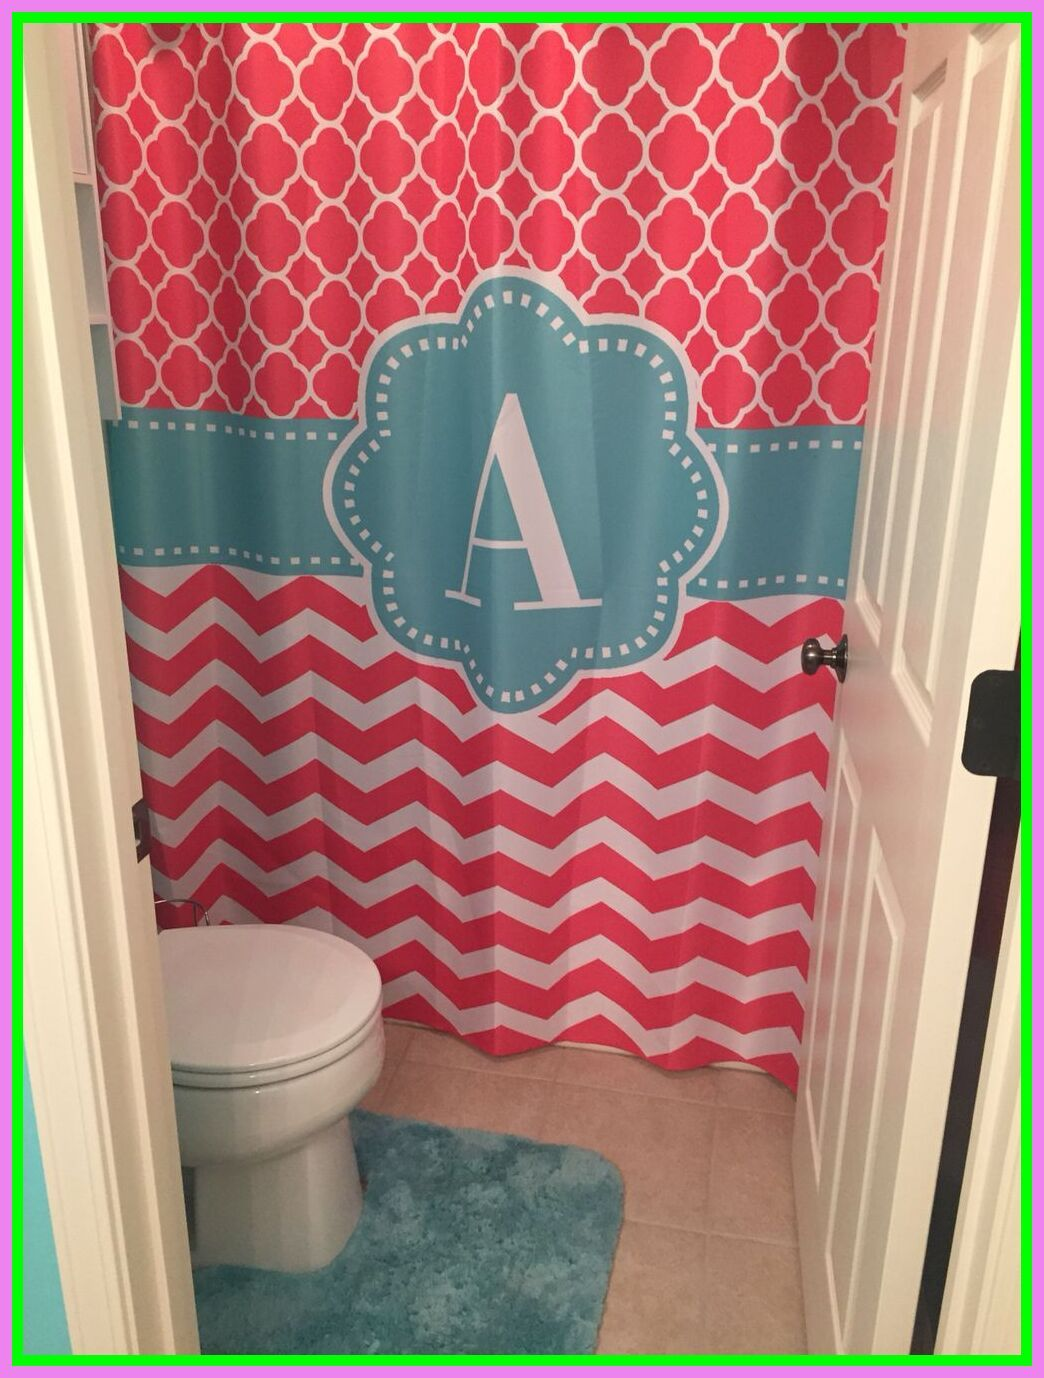 49 Reference Of Cute Bathroom Decor For Sale In 2020 Girl Bathroom Decor Cute Shower Curtains Girls Bathroom Shower Curtain